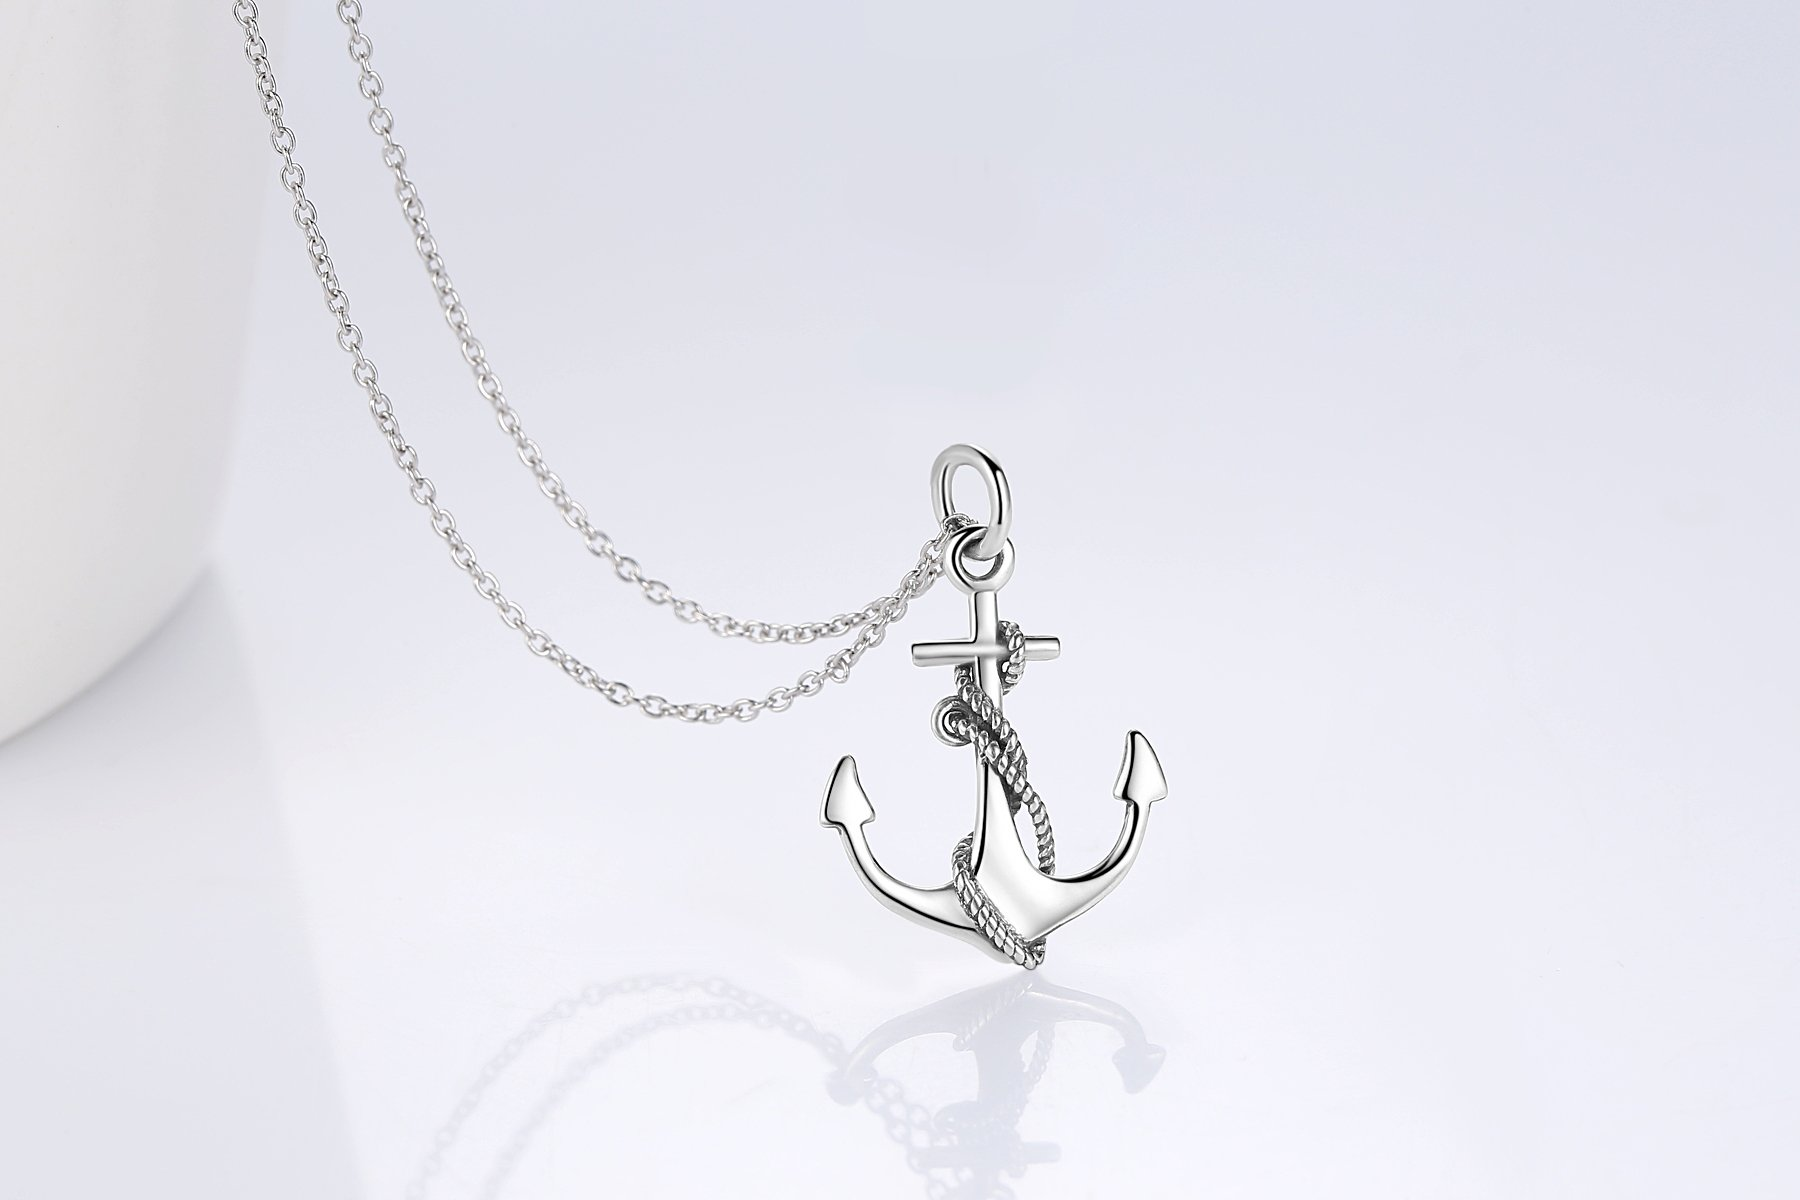 Women's Necklaces Sterling Silver Anchor Pendant Necklace Fine Jewelry for Women by Cuoka (Image #5)